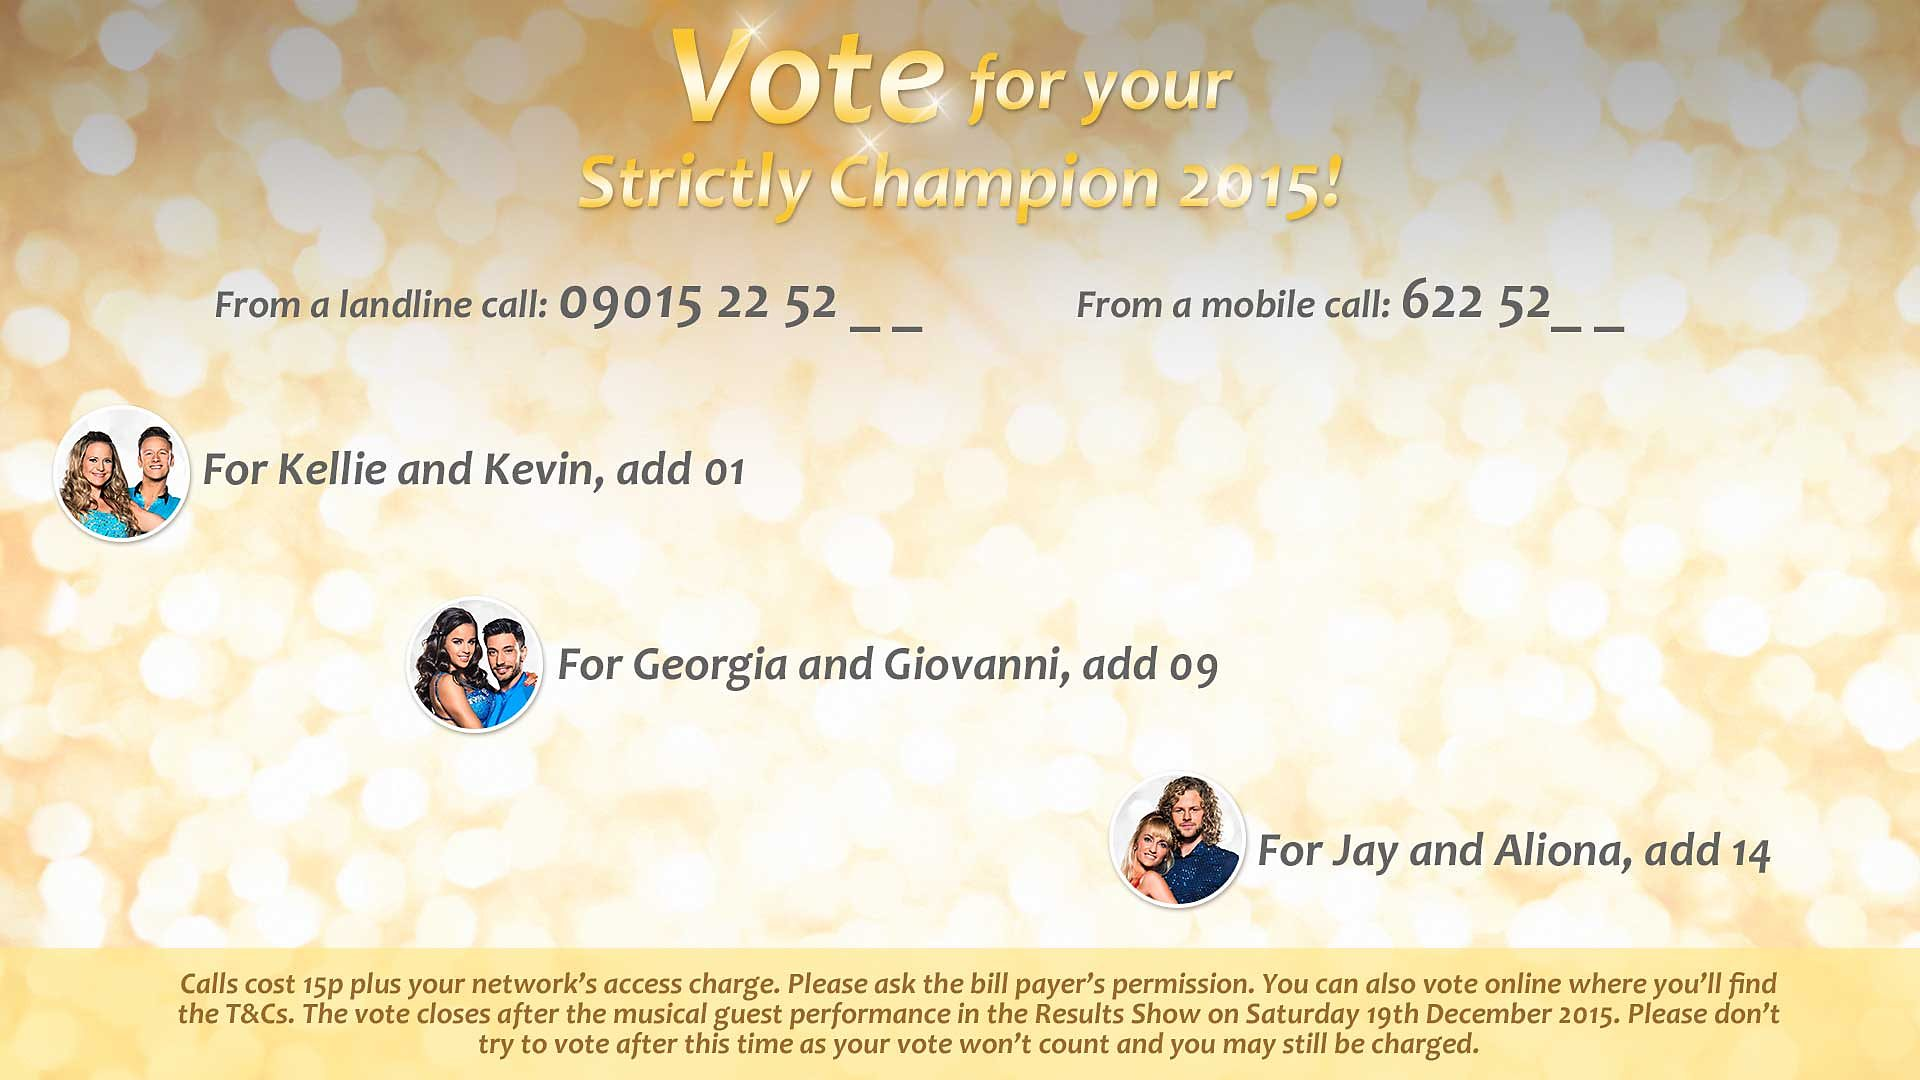 BBC One - Strictly Come Dancing - How to vote by phone